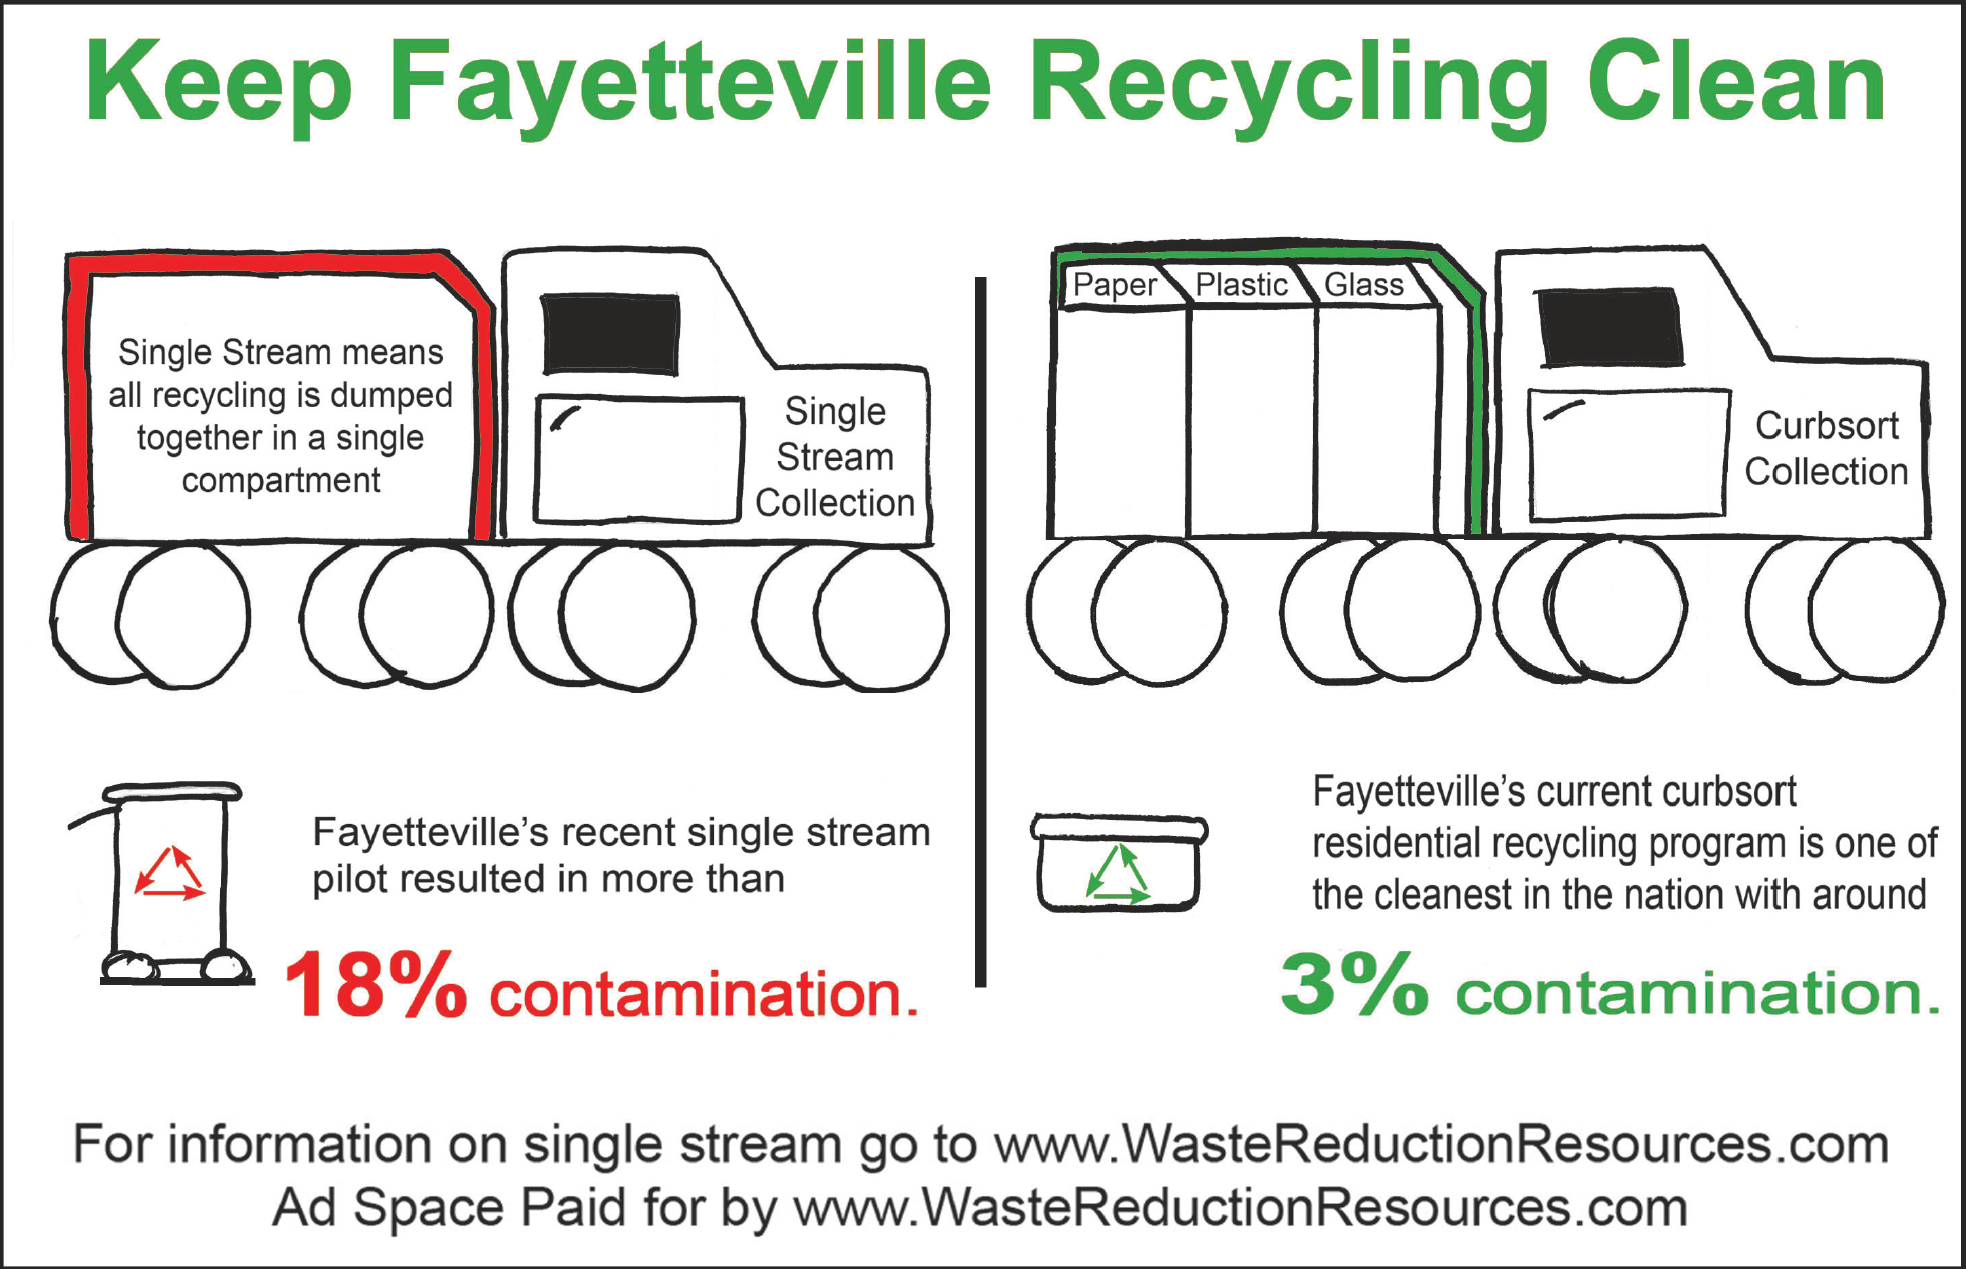 Keep Fayetteville's Recycling Clean